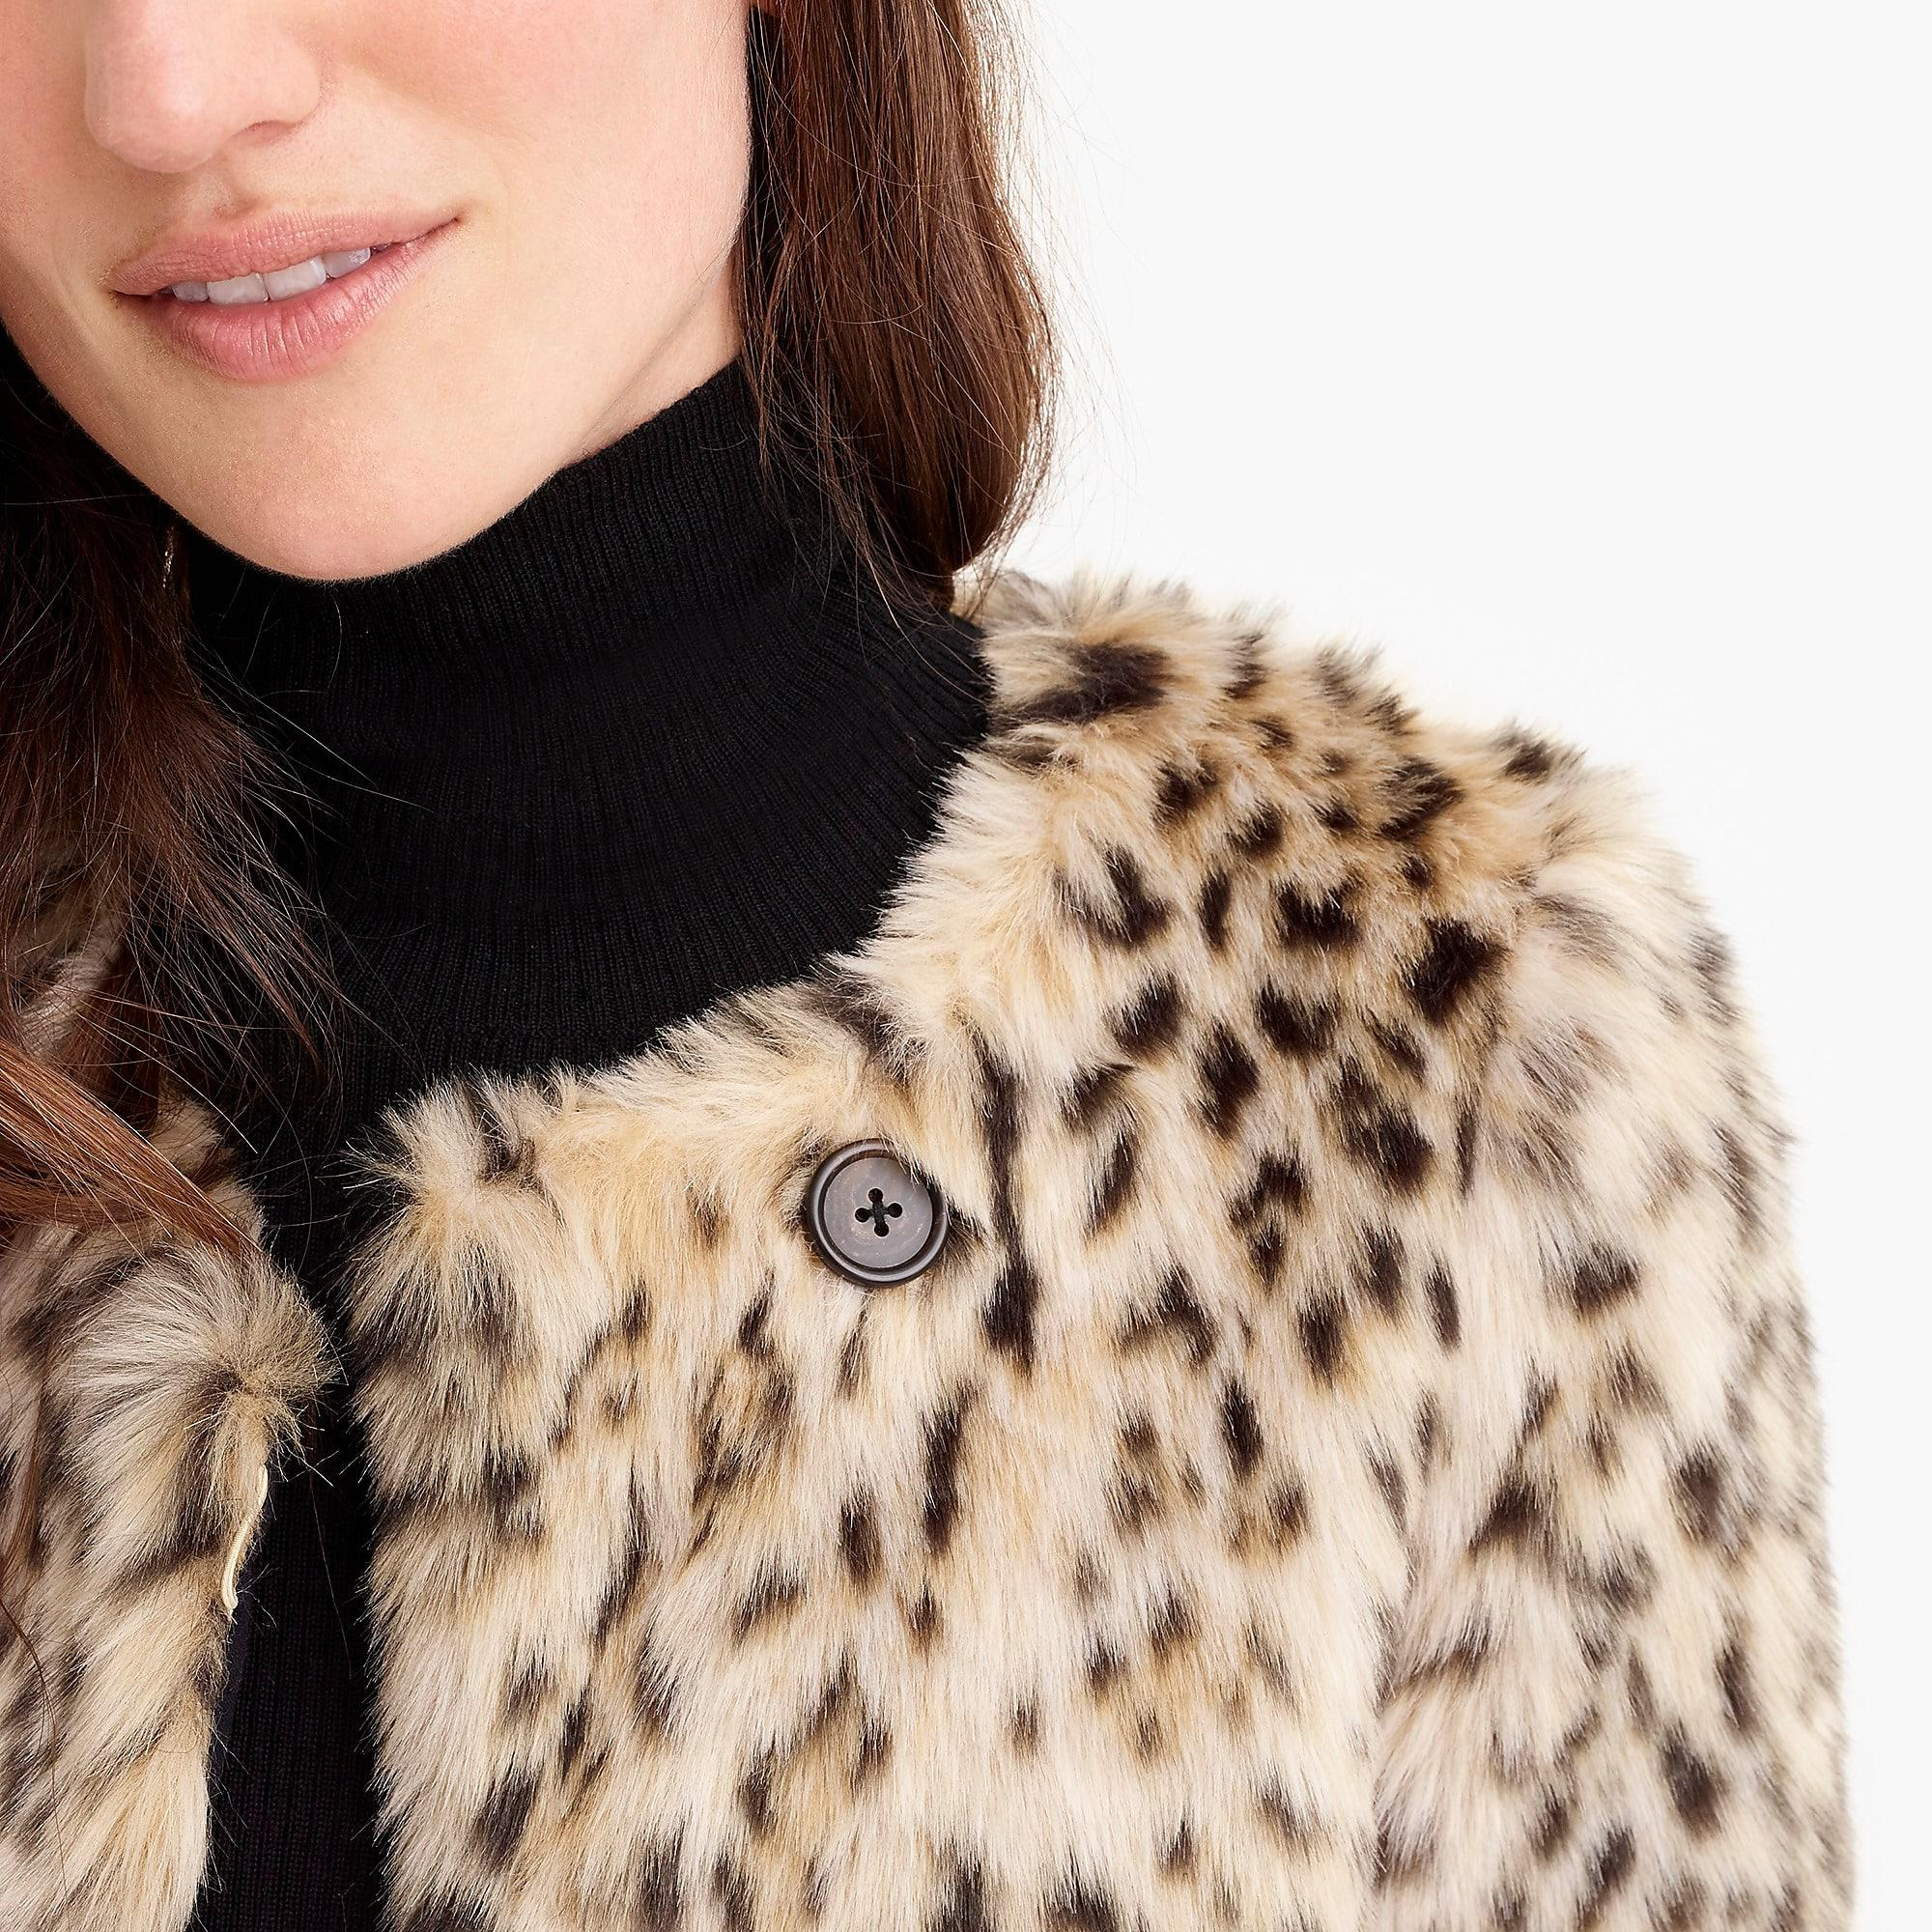 61f6f901bb60 J.Crew Cropped Faux-fur Coat In Snow Leopard in Brown - Save 60% - Lyst